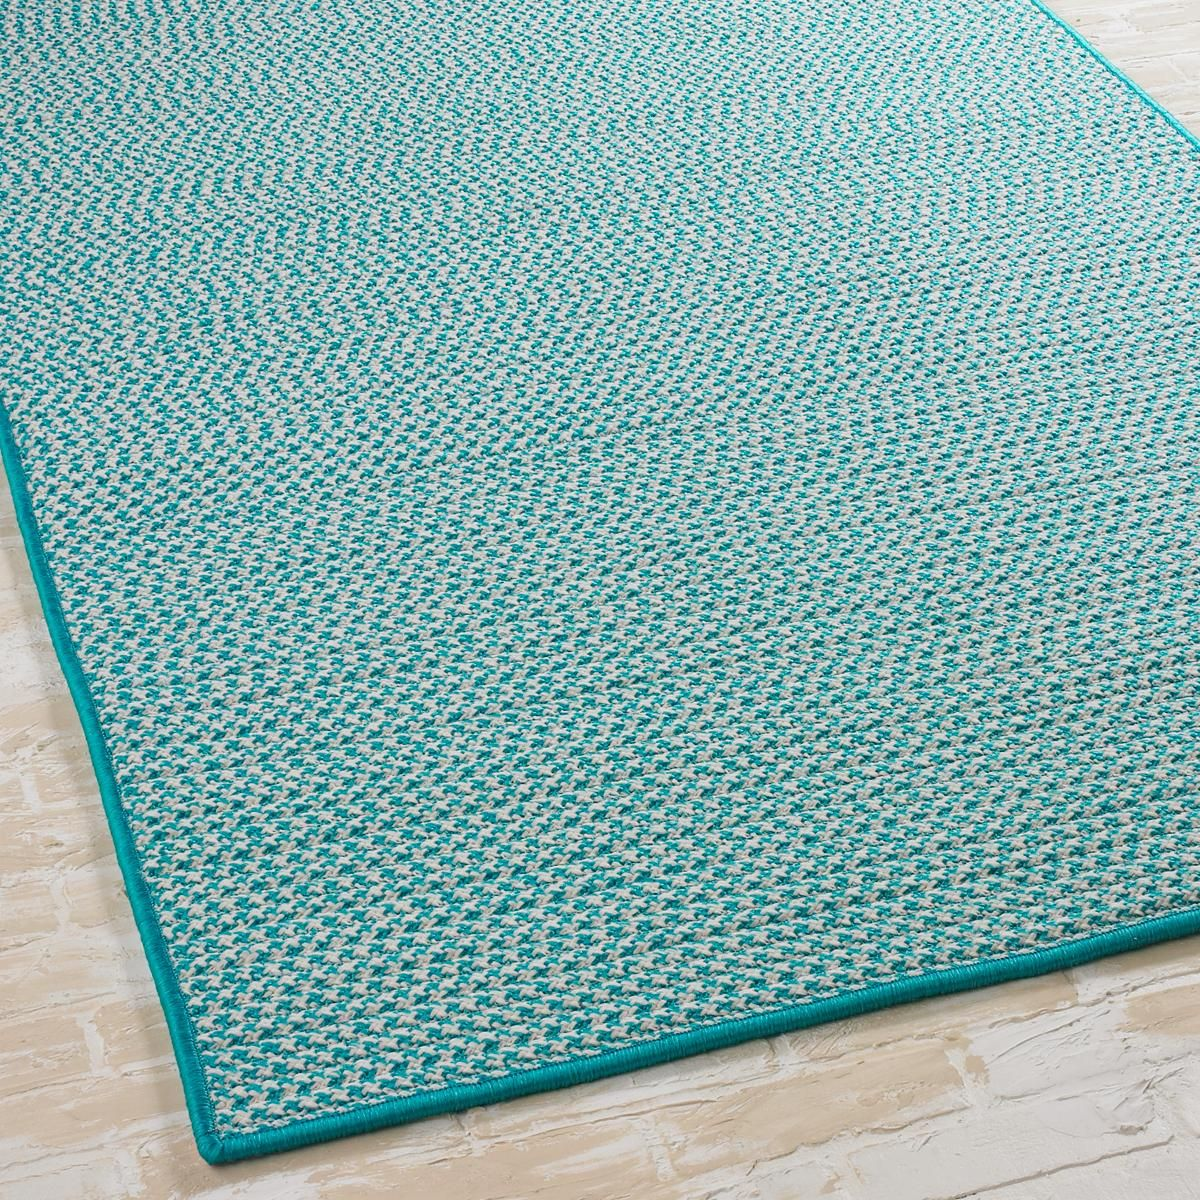 Best Houndstooth Tweed Indoor Outdoor Runner Rugs For River 400 x 300